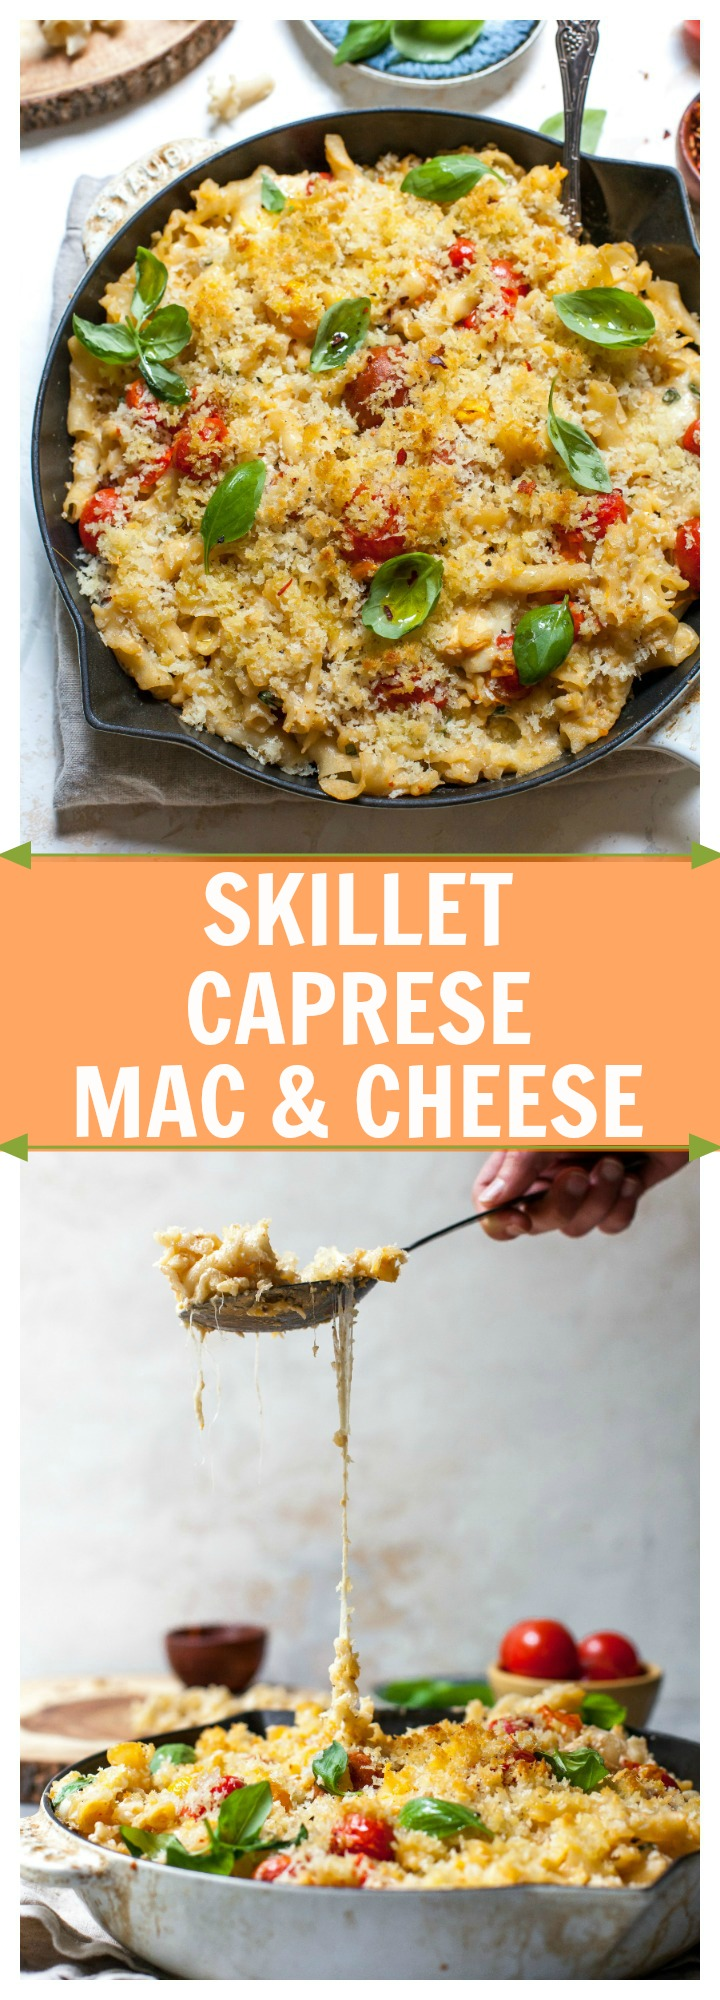 Mac and Cheese Caprese-style for Pinterest